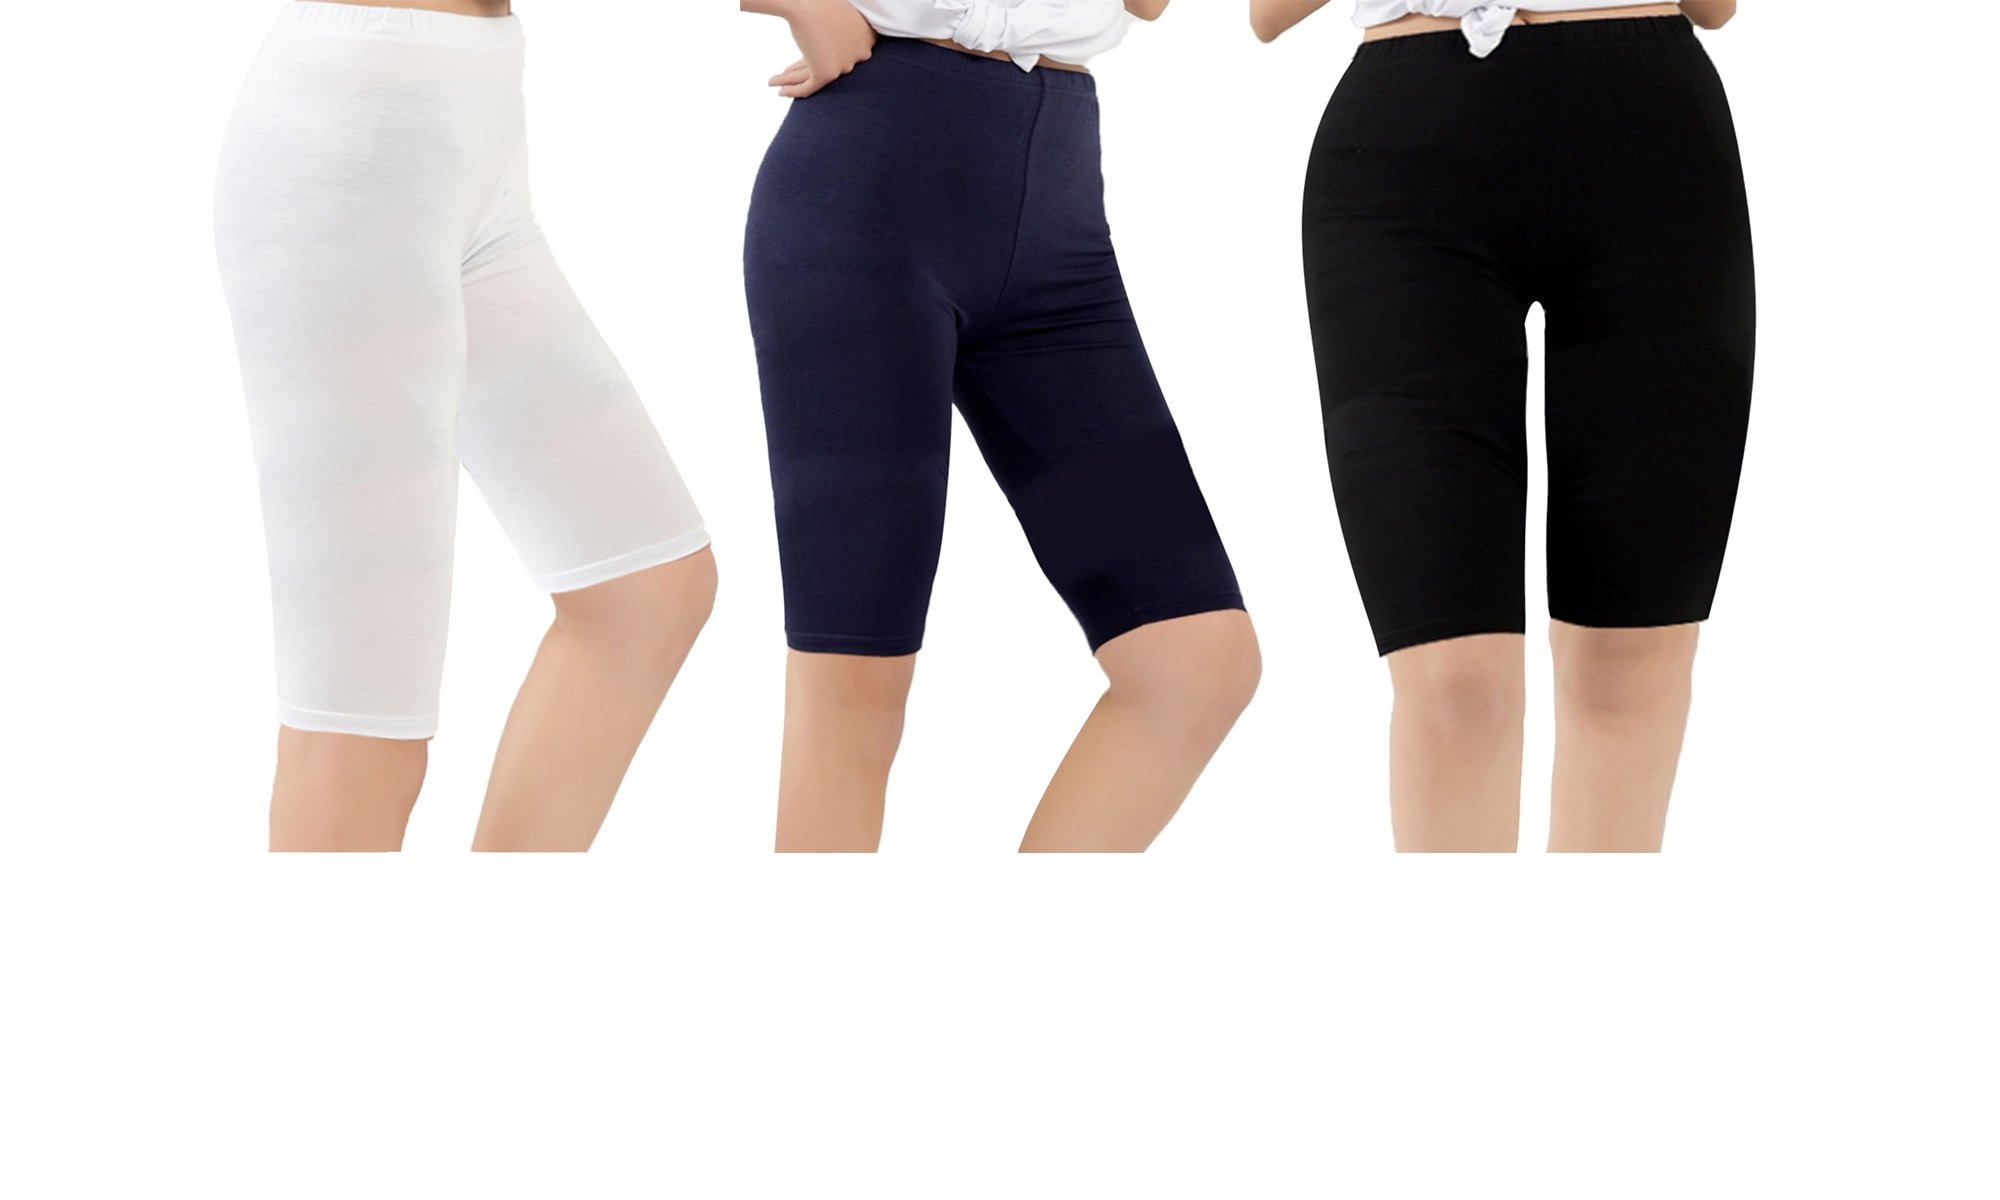 Zando Summer Casual Over The Knee Length Breathable Plus Size Comfort Modal Pants Capris Leggings for Women A 3 Pairs Black & Navy & White US XL-US 1X Plus